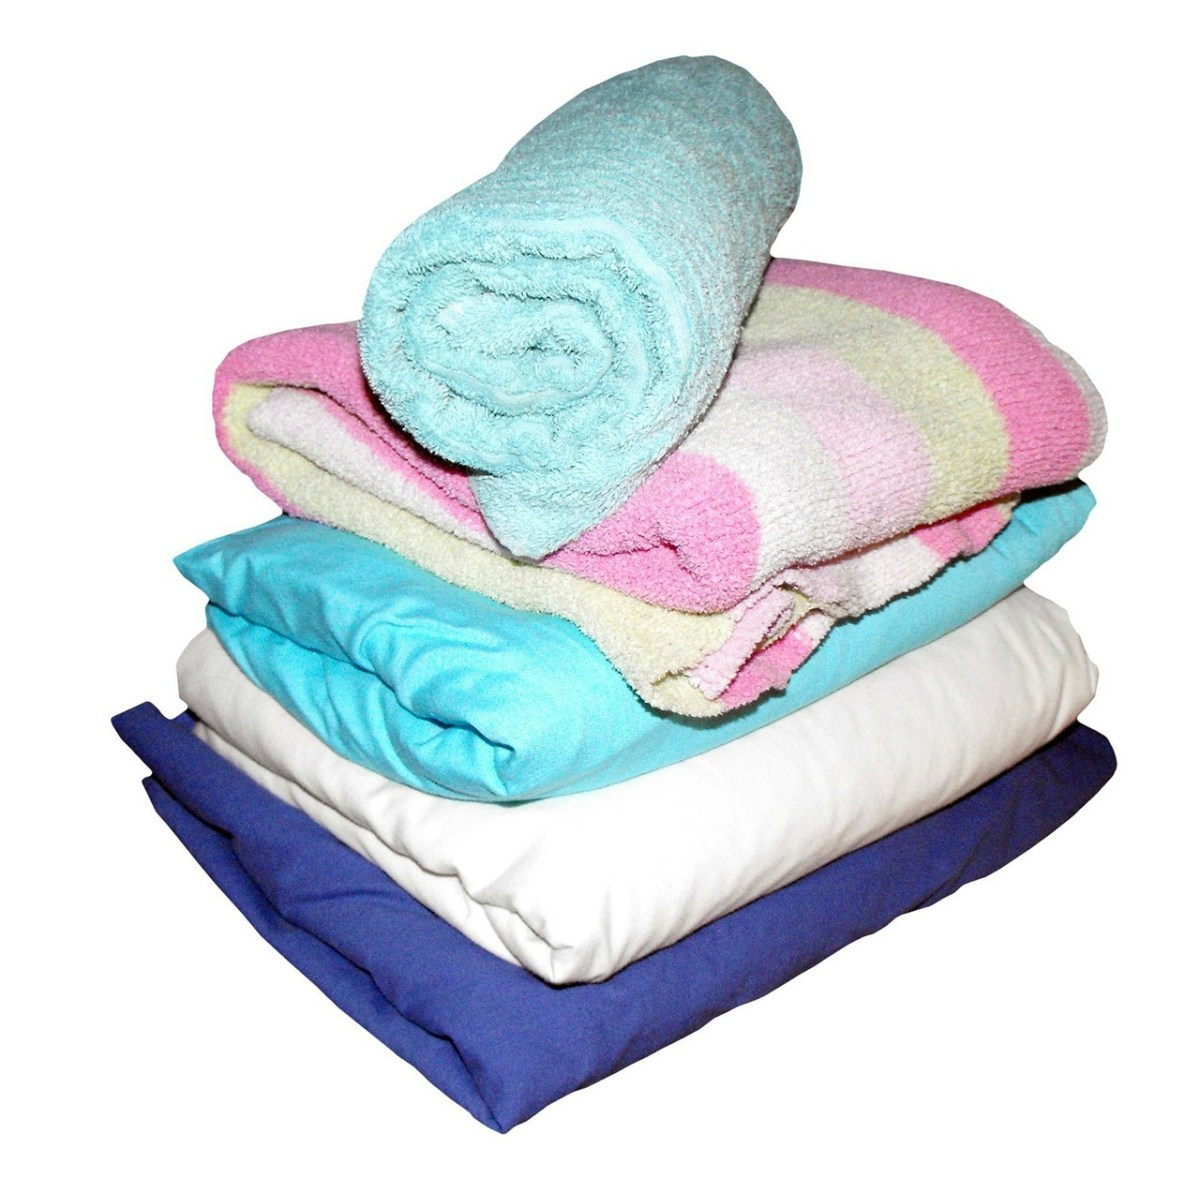 Saving Tip: Here's a little tip to save money on your weekly laundry